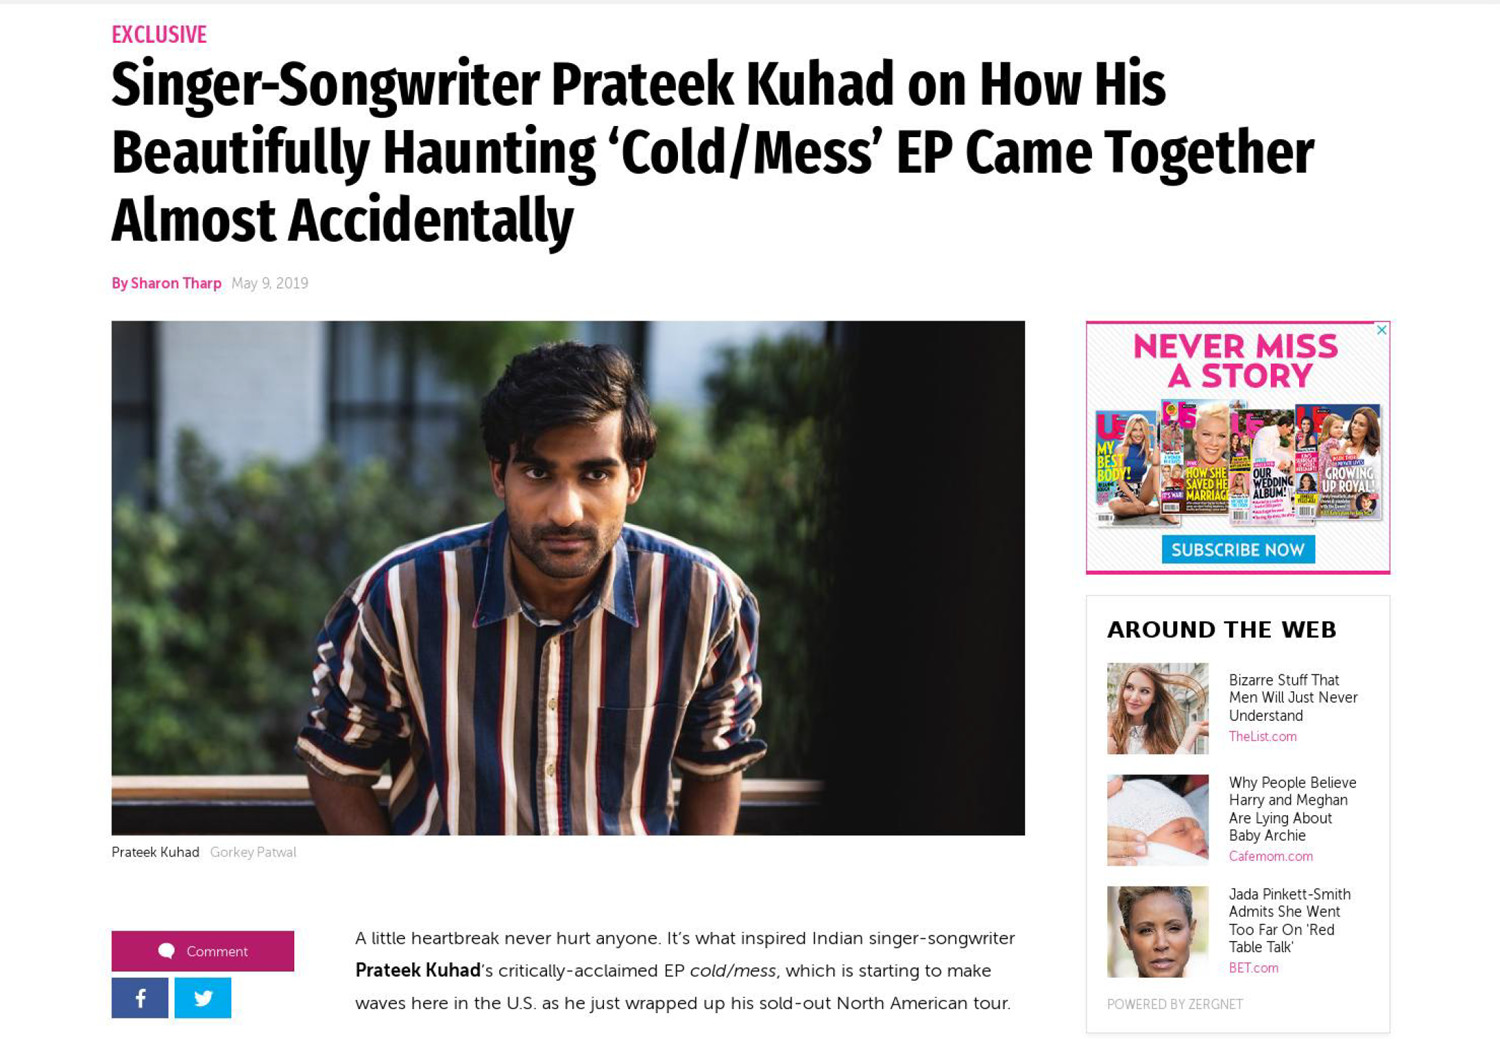 Singer-Songwriter Prateek Kuhad on How His Beautifully Haunting 'Cold/Mess' EP Came Together Almost Accidentally